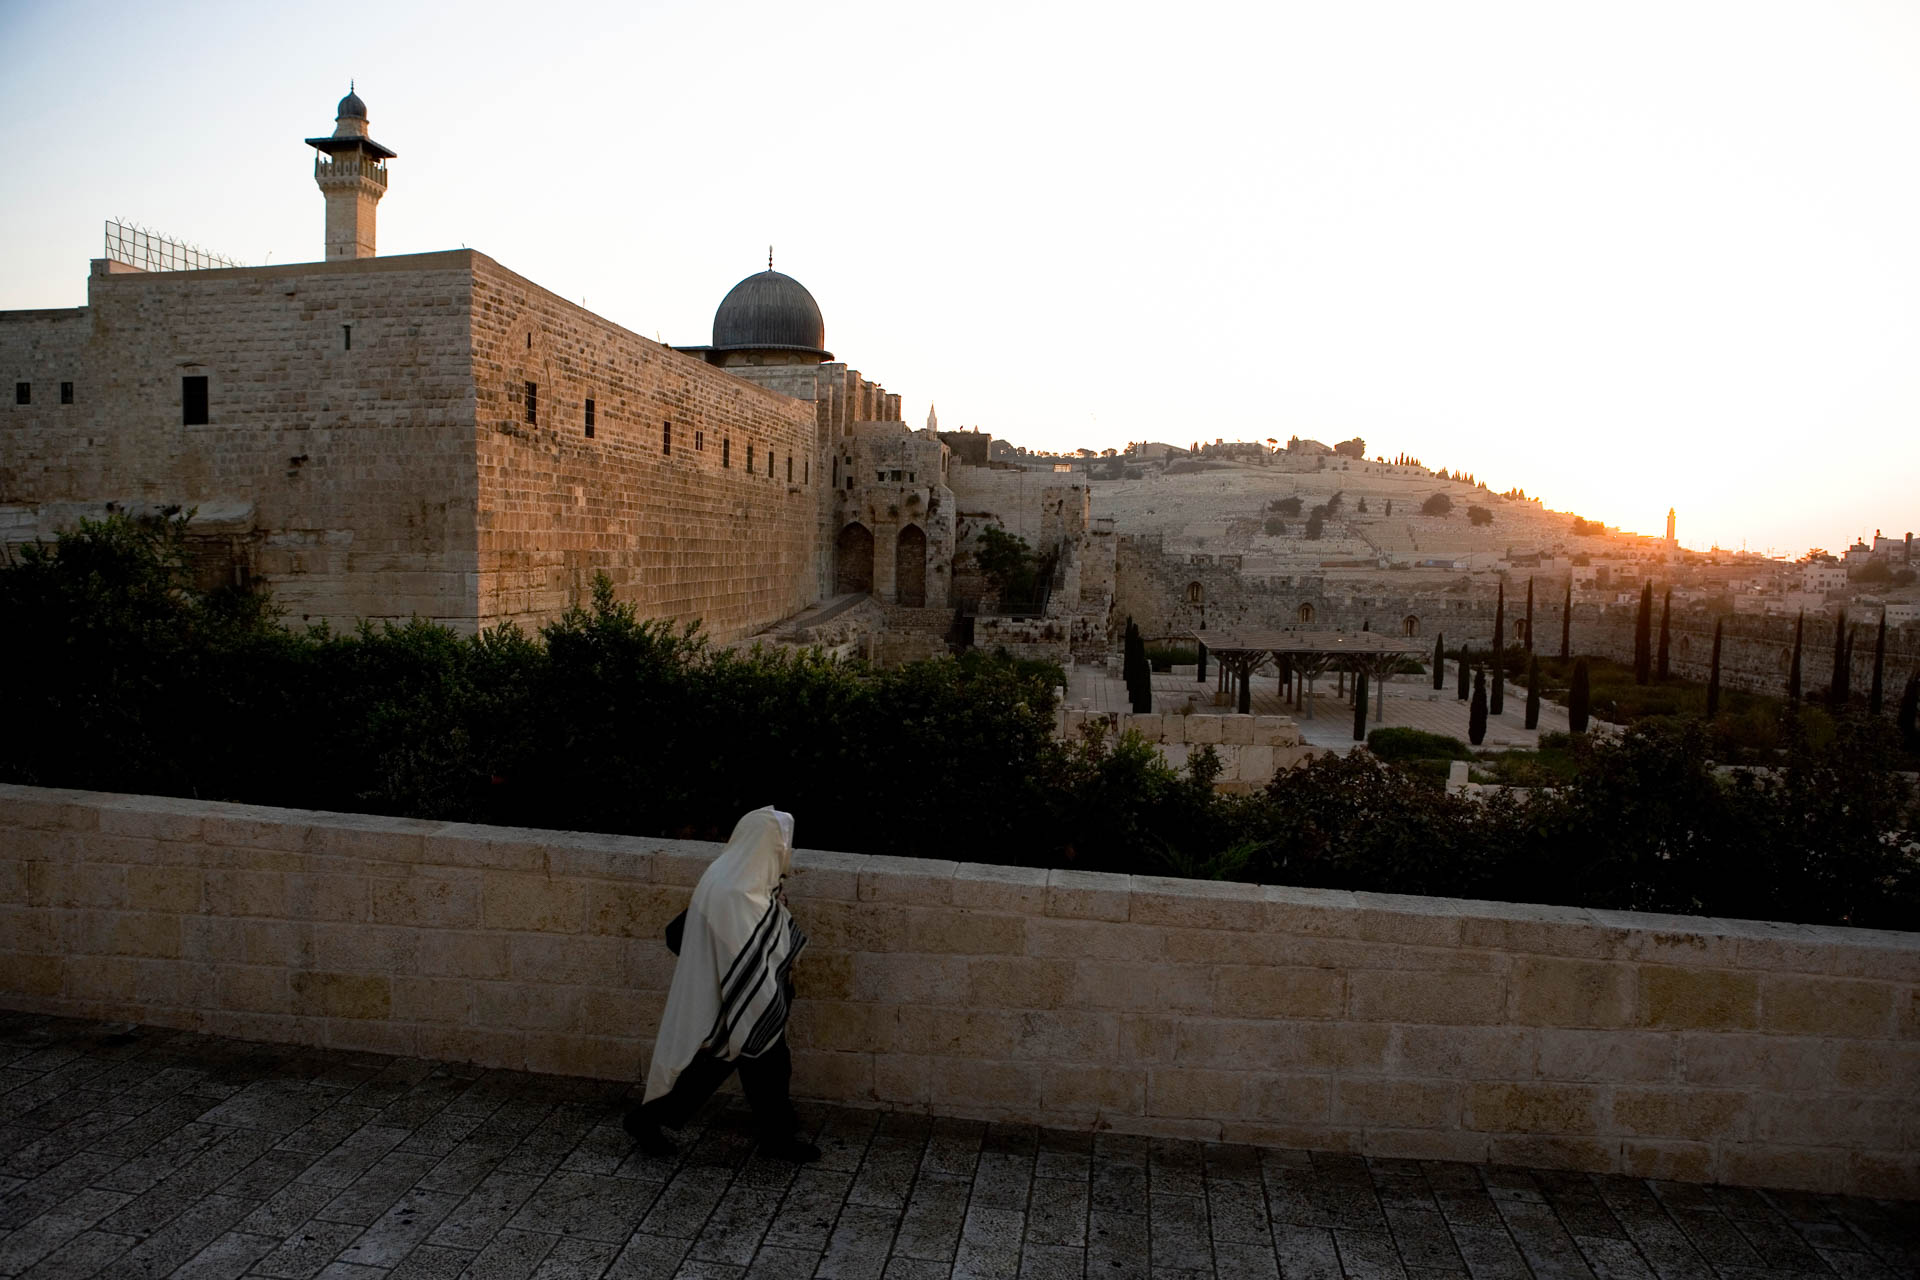 Jerusalem, Israel - 14 October 2005Sunrise on Jerusalem and the Dome of Rock seen from the Archaeological Garden.© GIANNI GIANSANTI